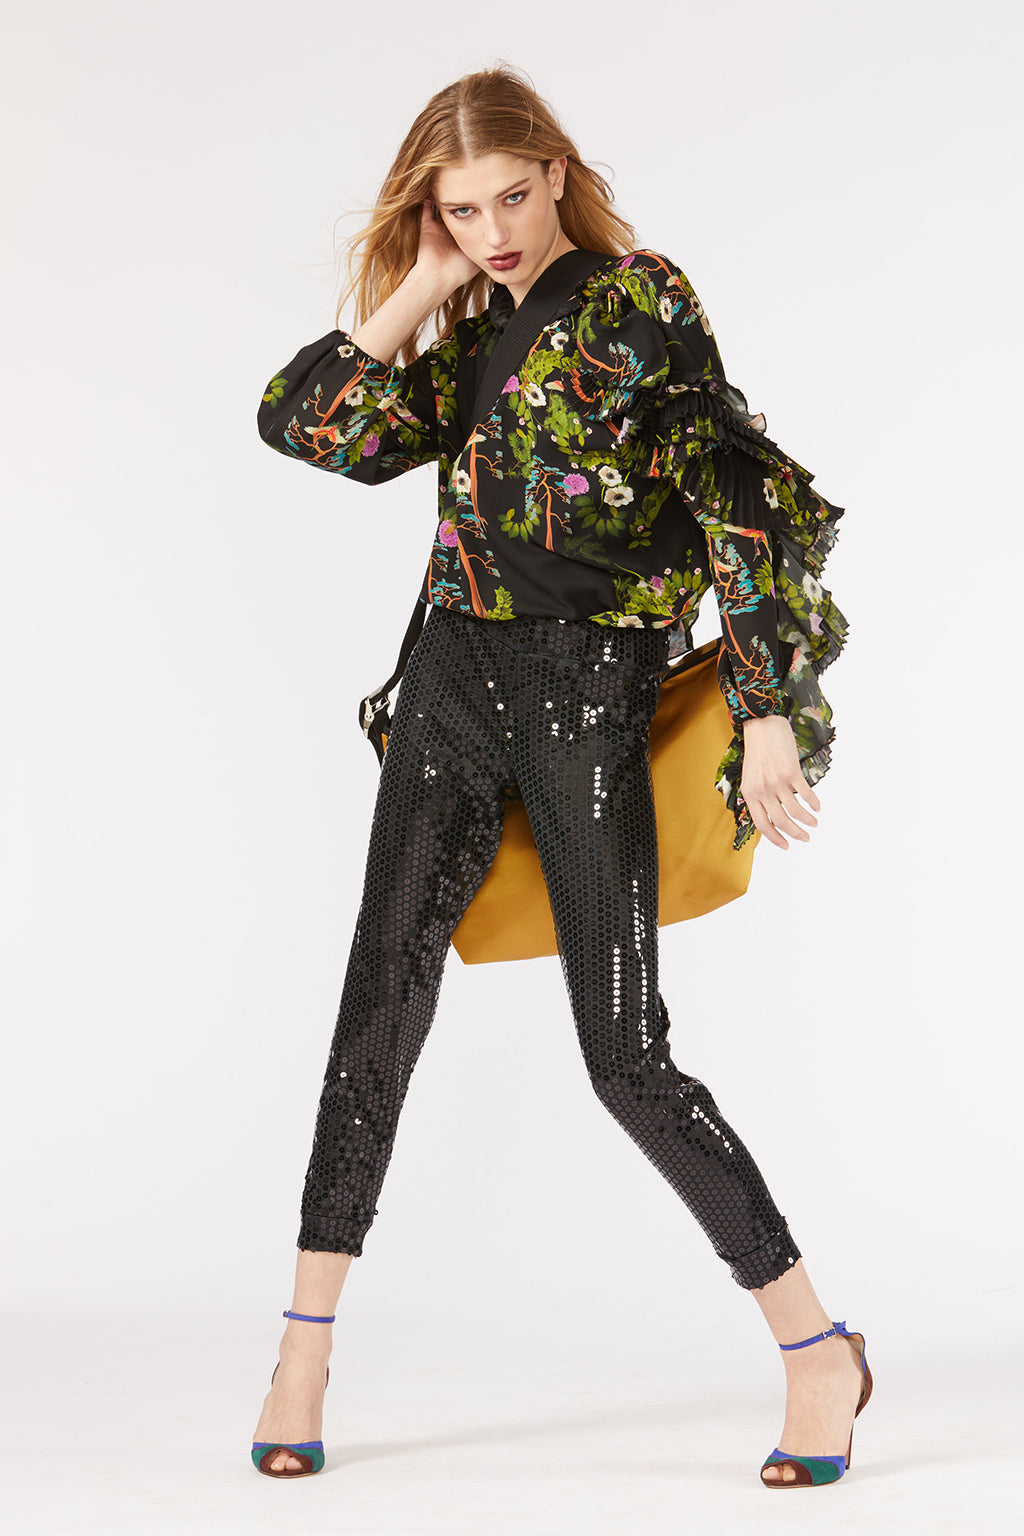 Cynthia Rowley Fall 2018 look 4 featuring sequin leggings and printed blouse with ruffled sleeve.